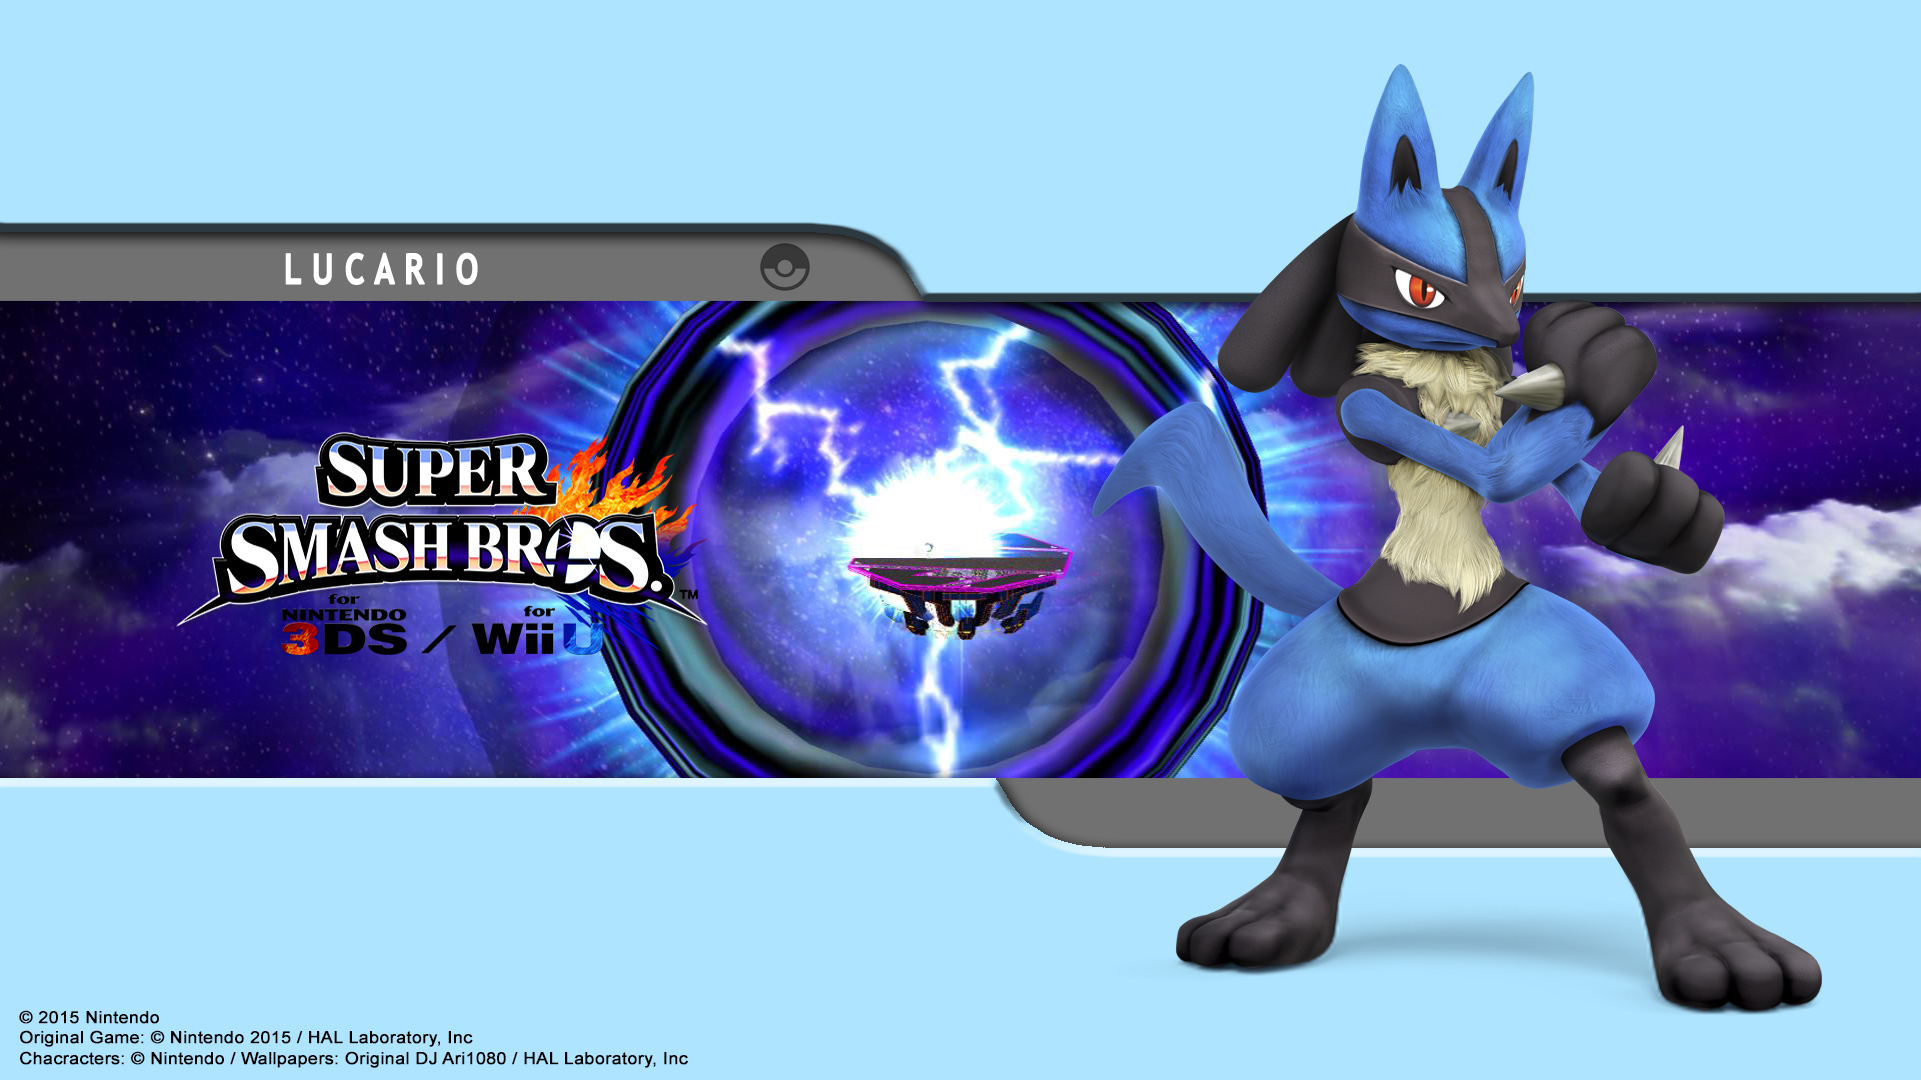 Lucario Wallpaper - SSB for 3Ds / Wii U by DJAri1080 on ...